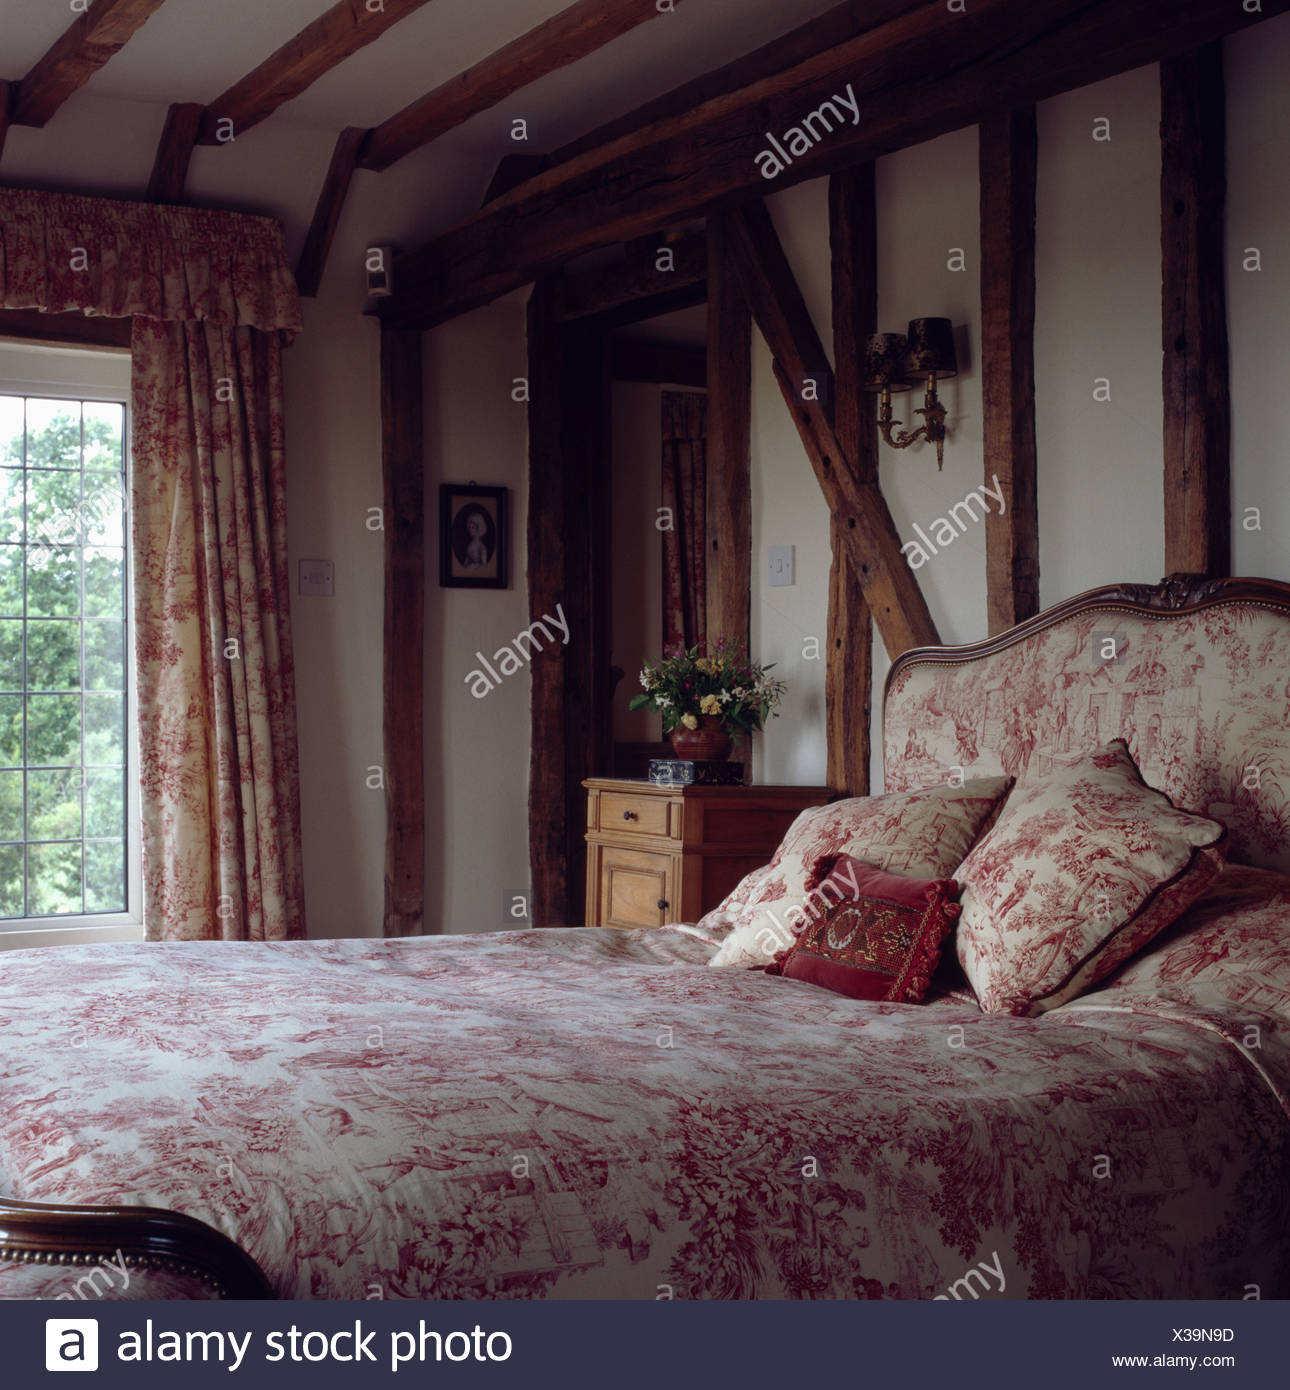 Pink Bedroom With Beamed Walls And Bed With Upholstered Headboard And Pink Bedlinen Stock Photo Alamy